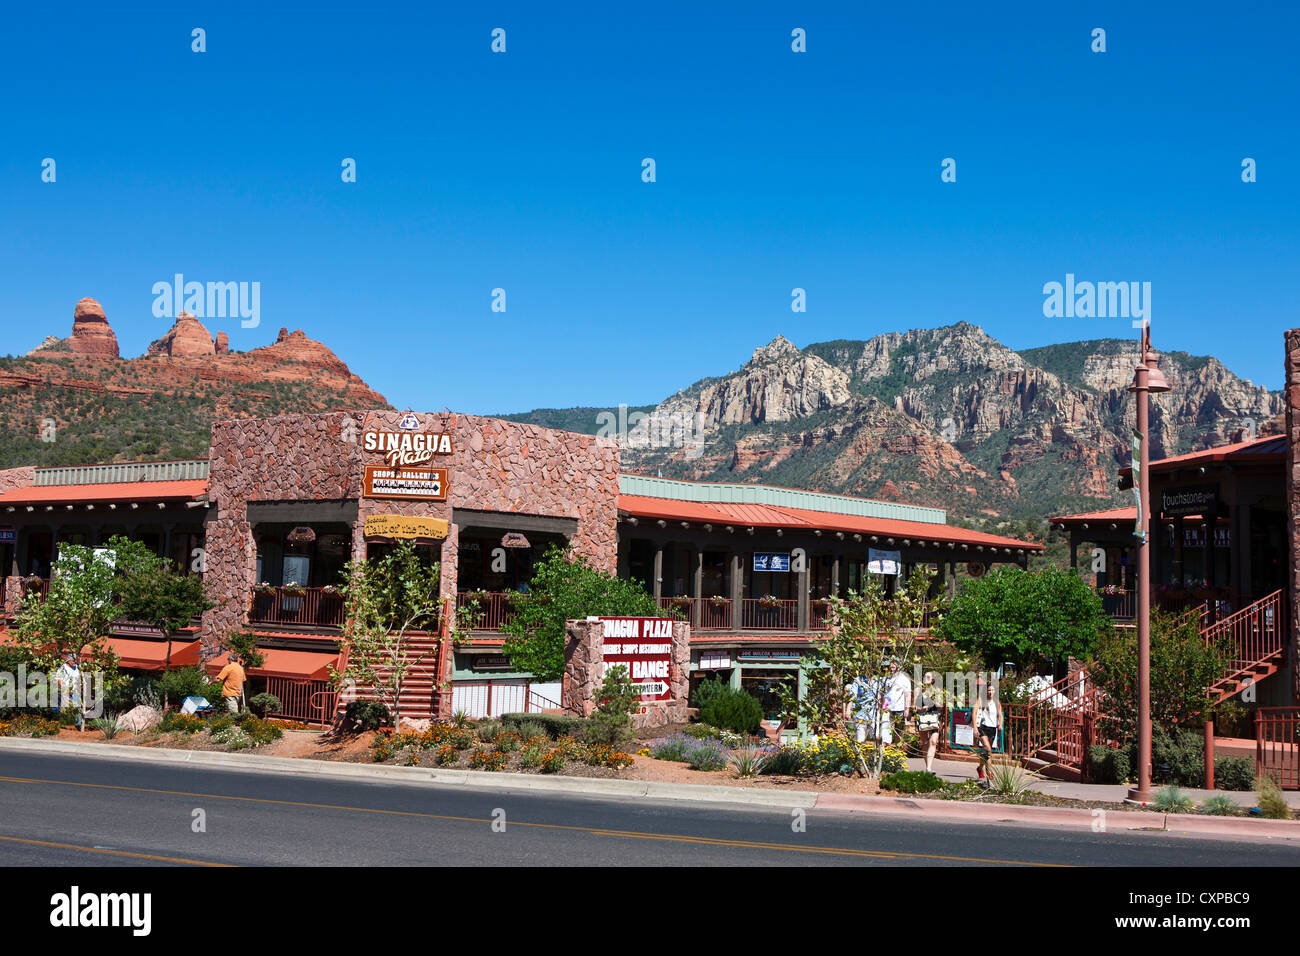 Best Sedona Shopping: See reviews and photos of shops, malls & outlets in Sedona, Arizona on TripAdvisor.